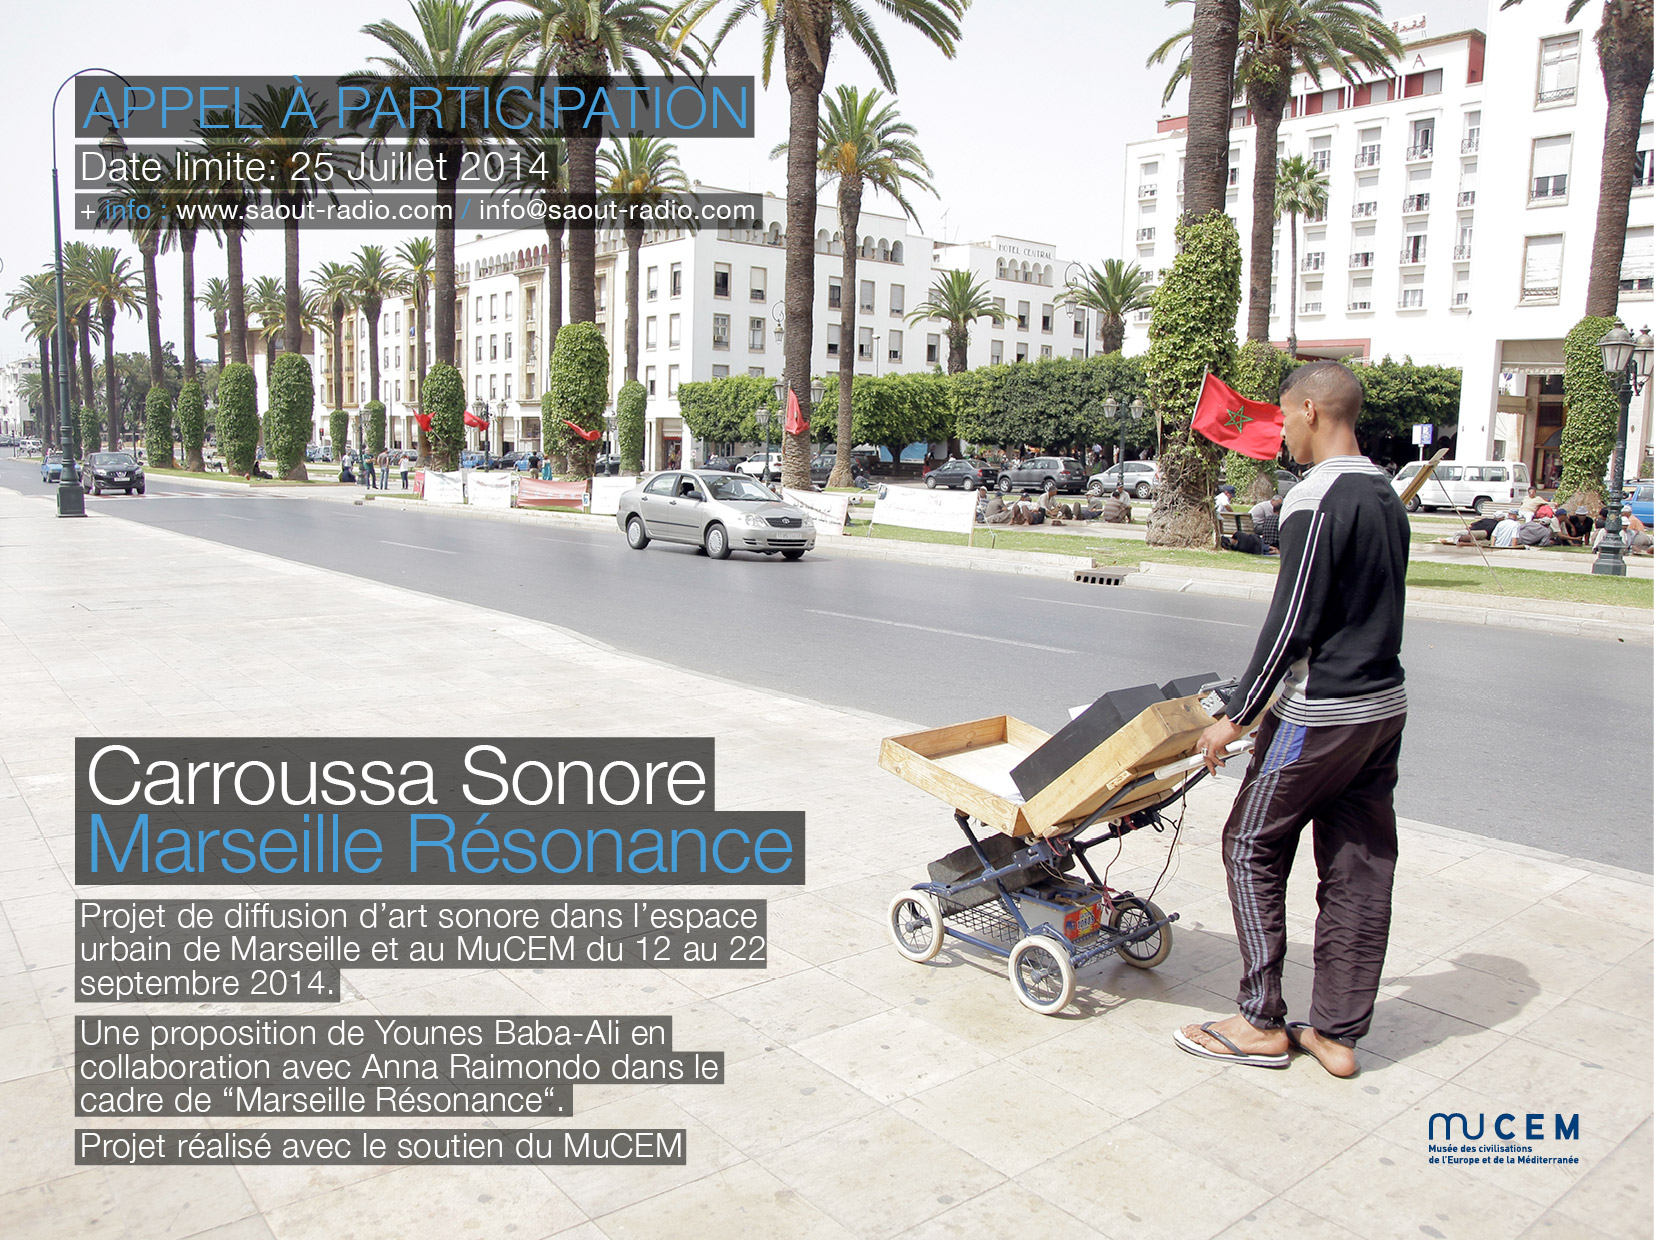 Carroussa Sonore: Marseille Resonance